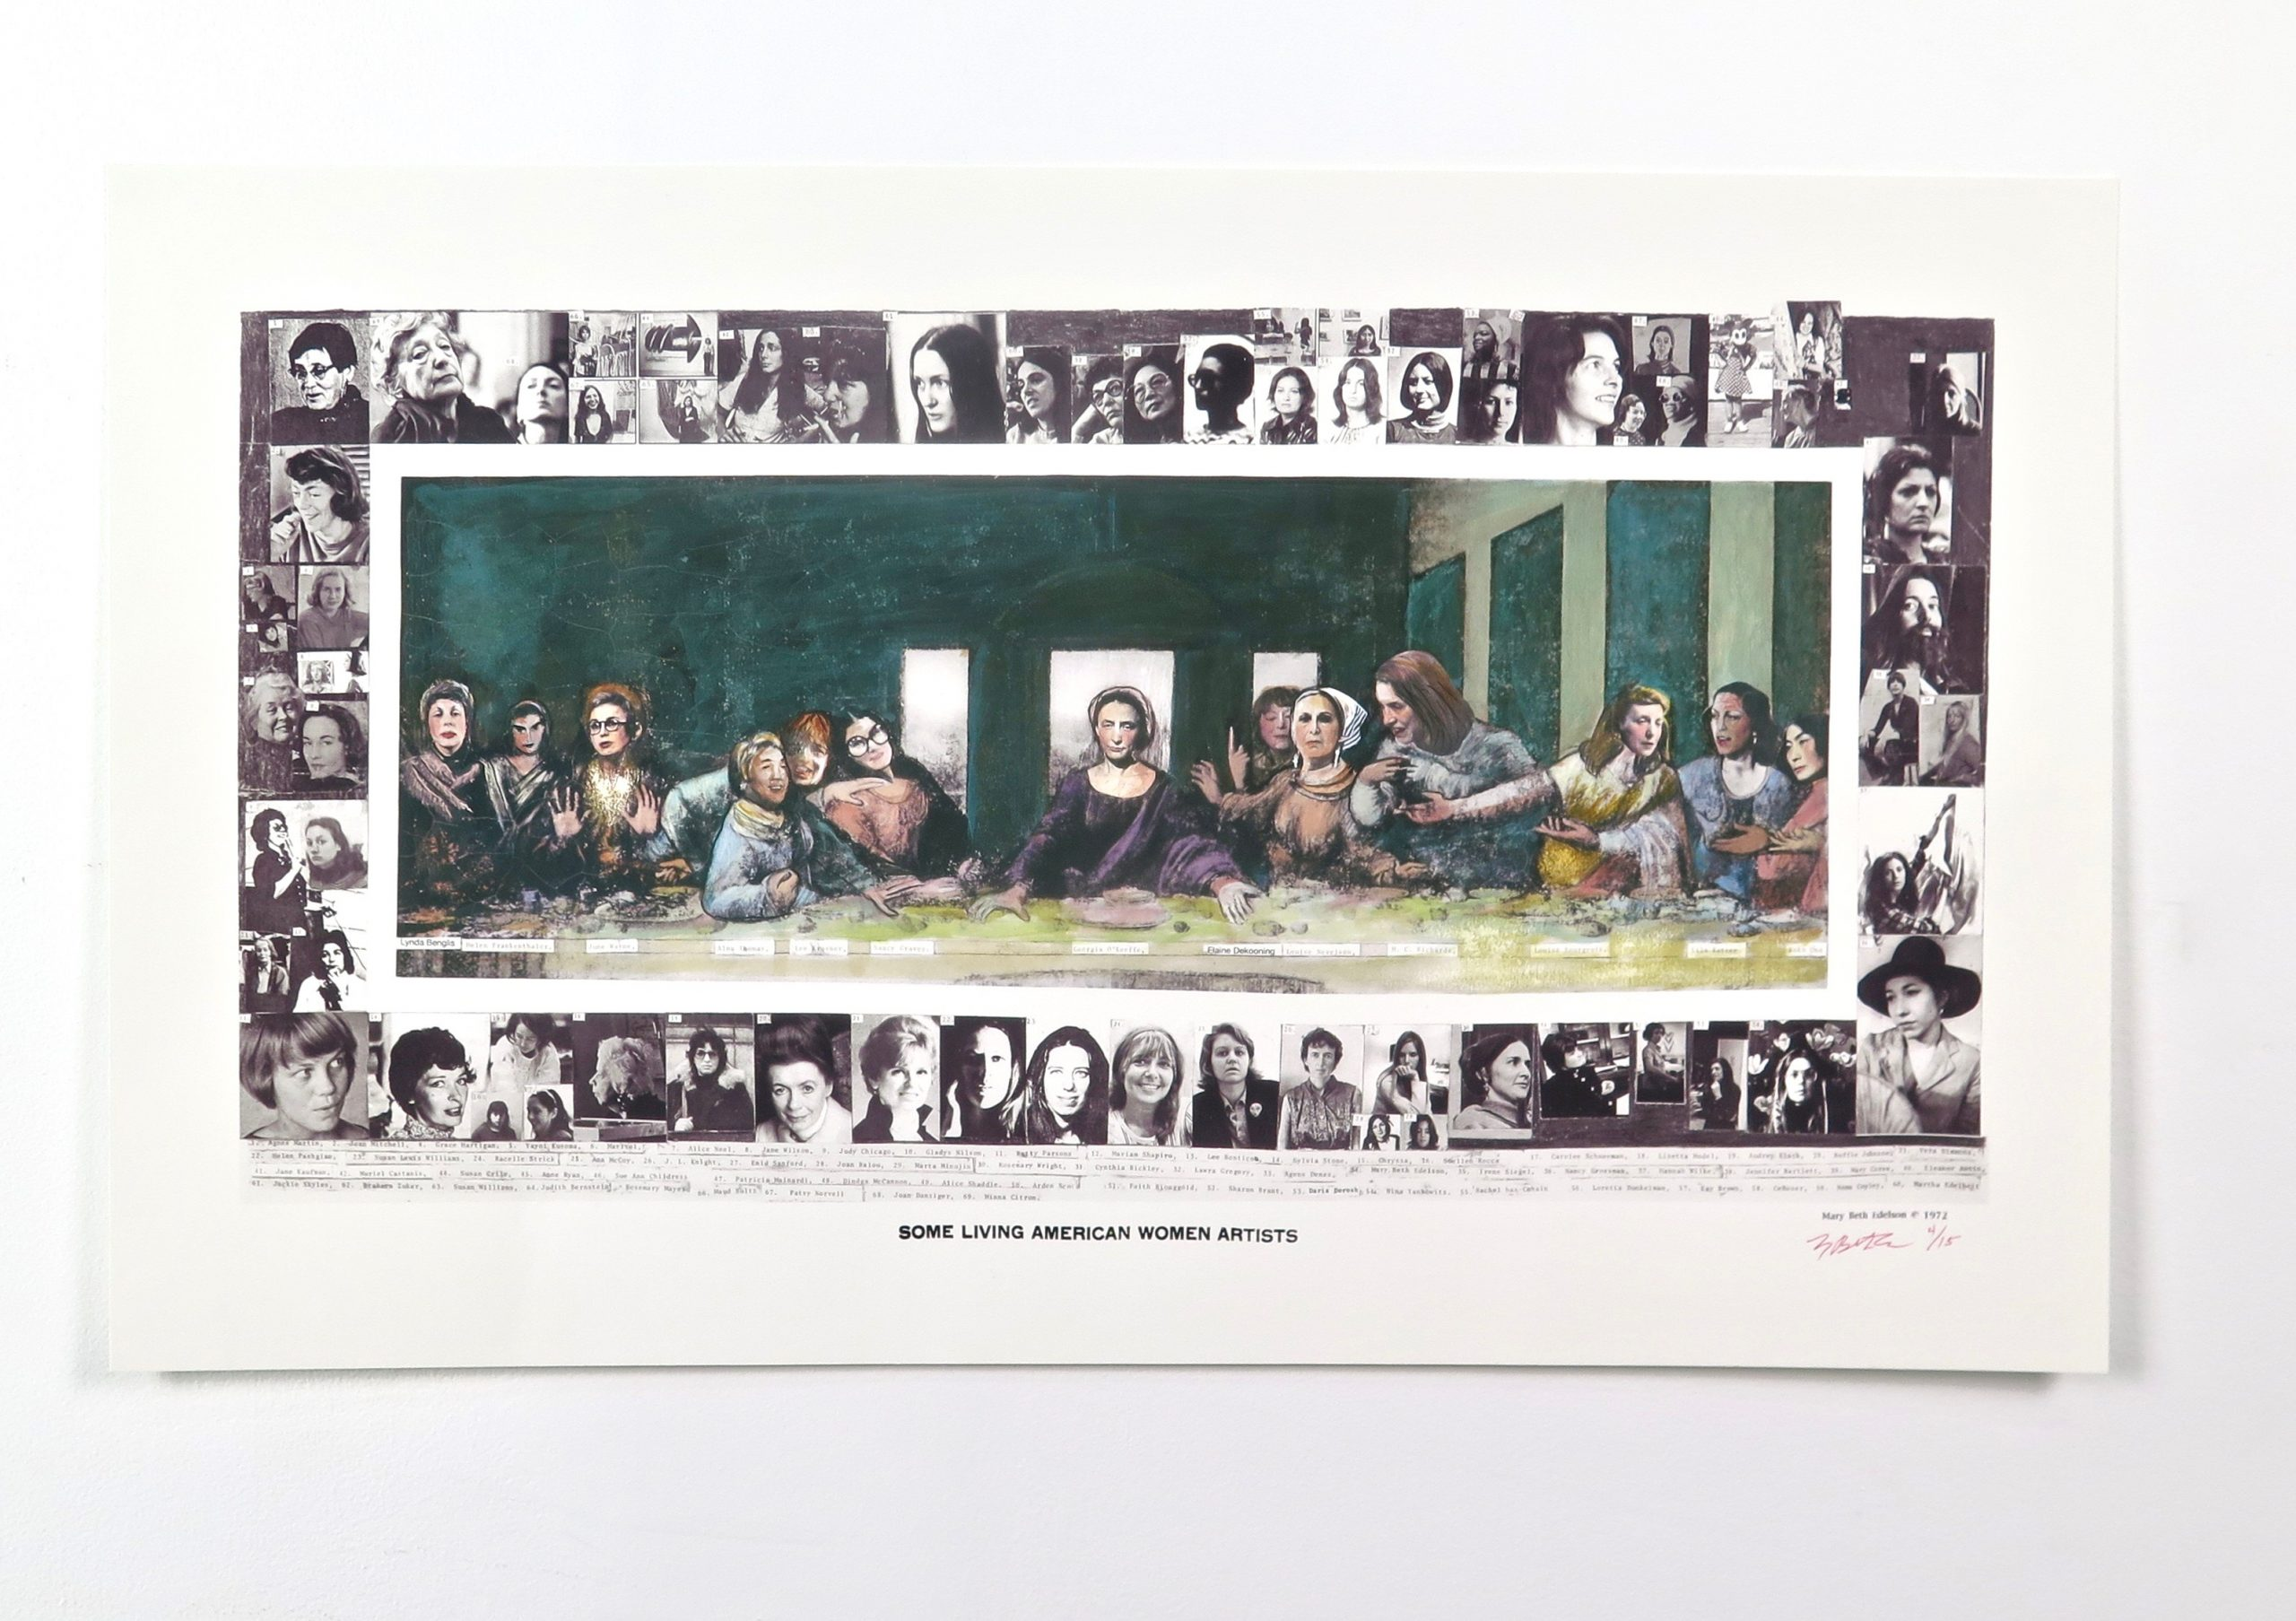 Some Living American Women Artists, 1972. Courtesy David Lewis Gallery